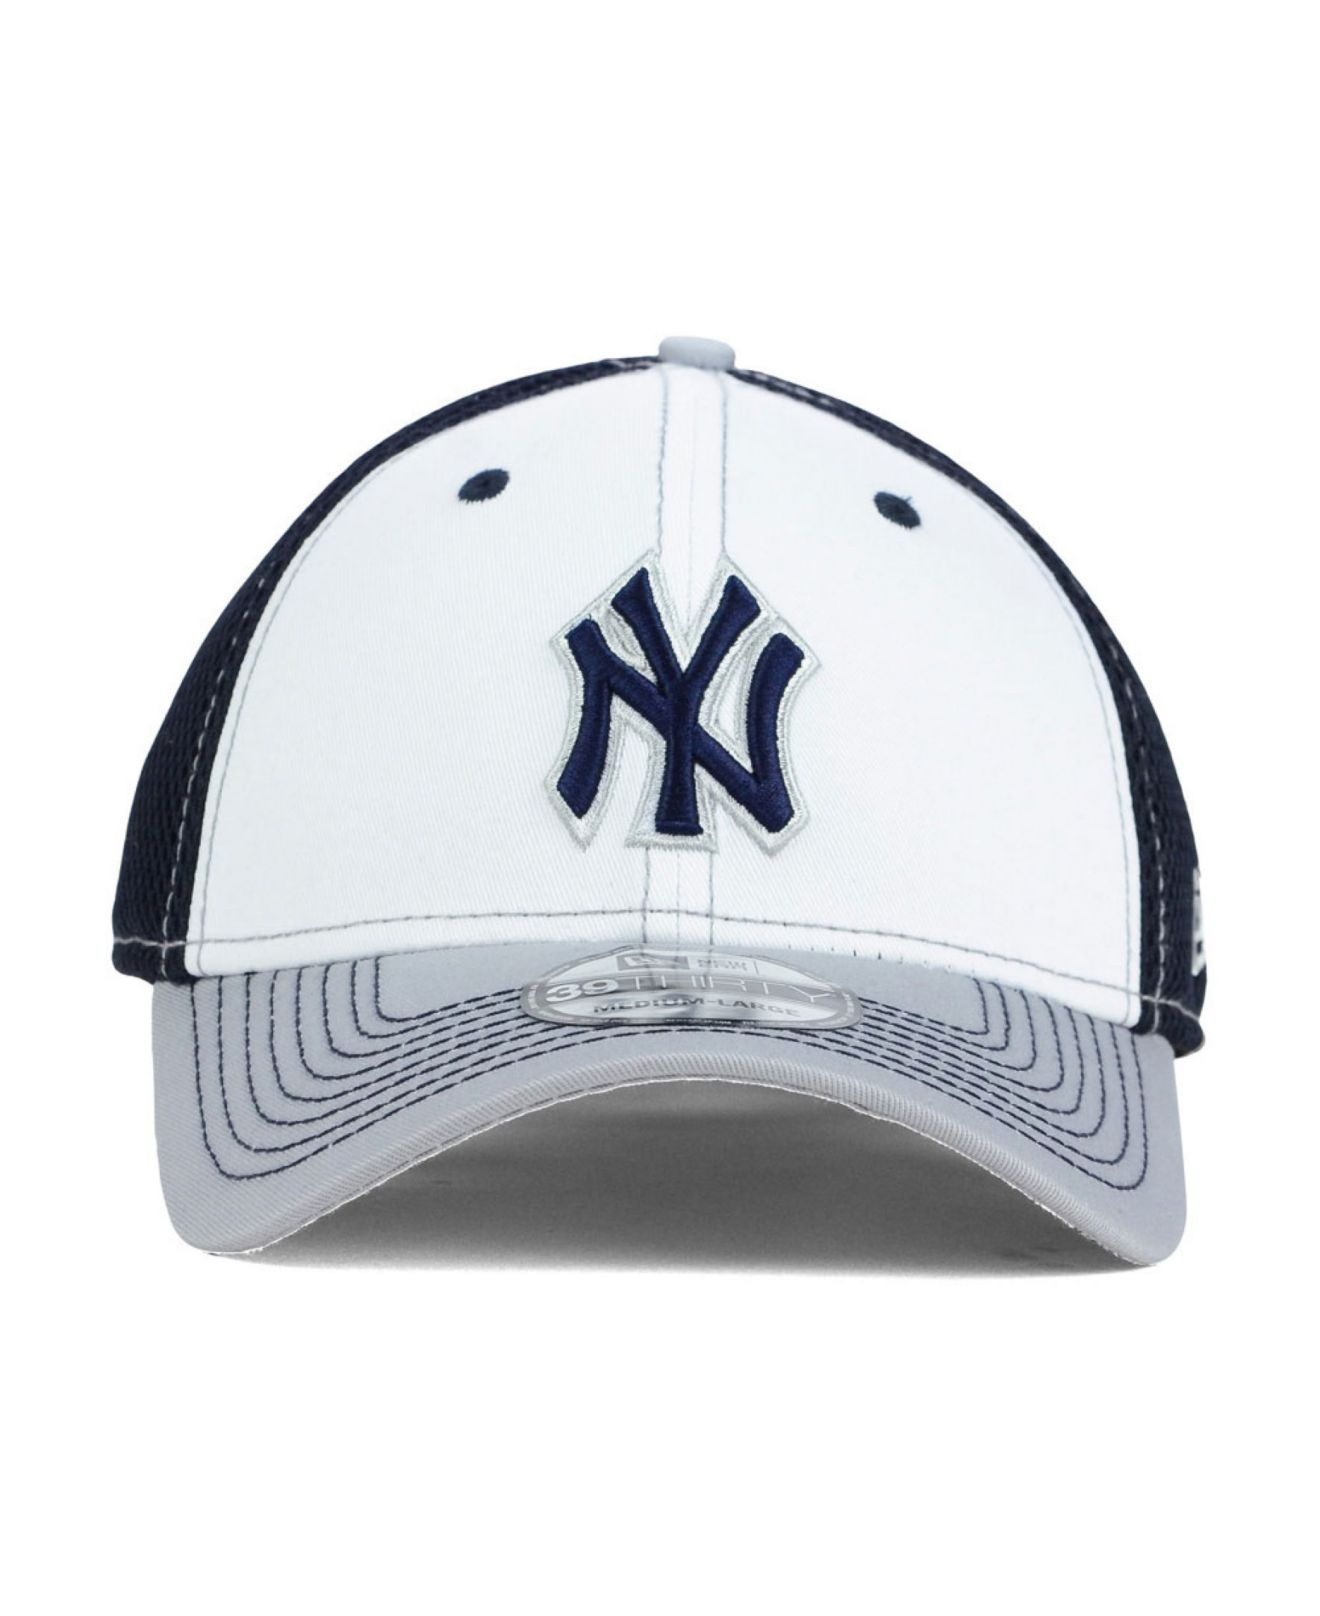 6d903a9c0c6 ... new style lyst ktz new york yankees neo 39thirty cap in blue for men  82dc1 2c689